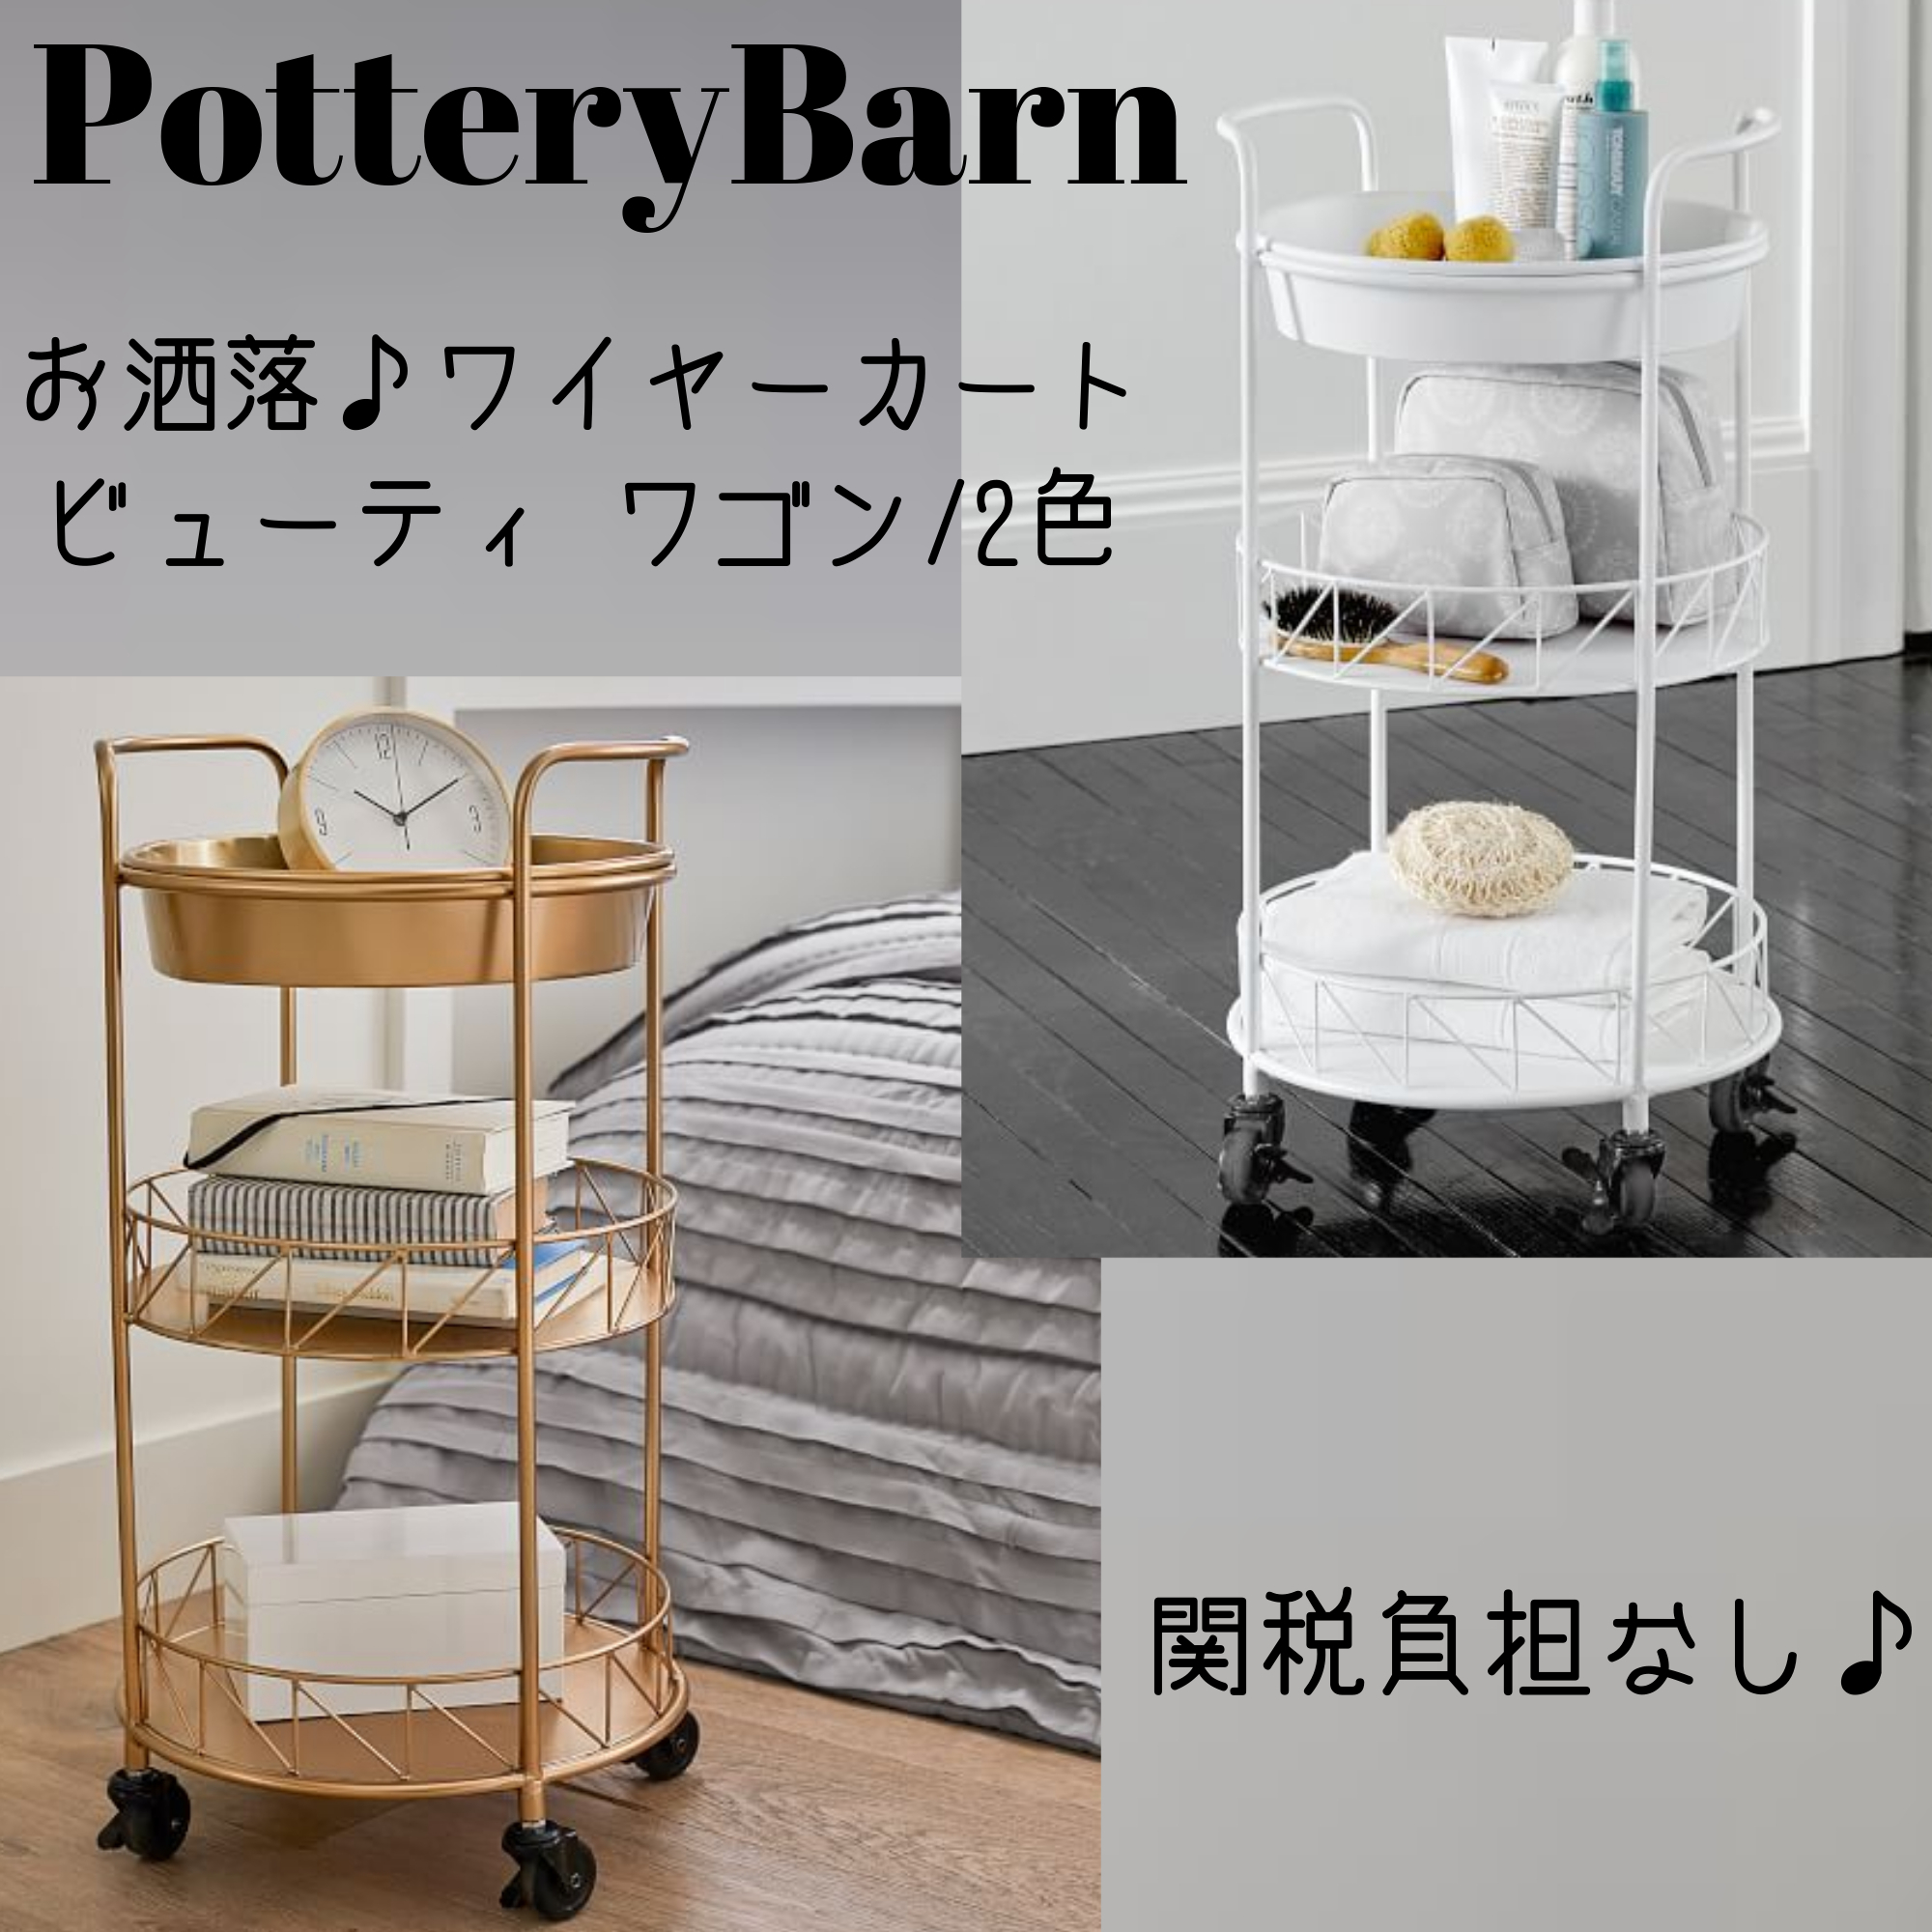 Pottery Barn 2019 SS Kitchen & Dining Room